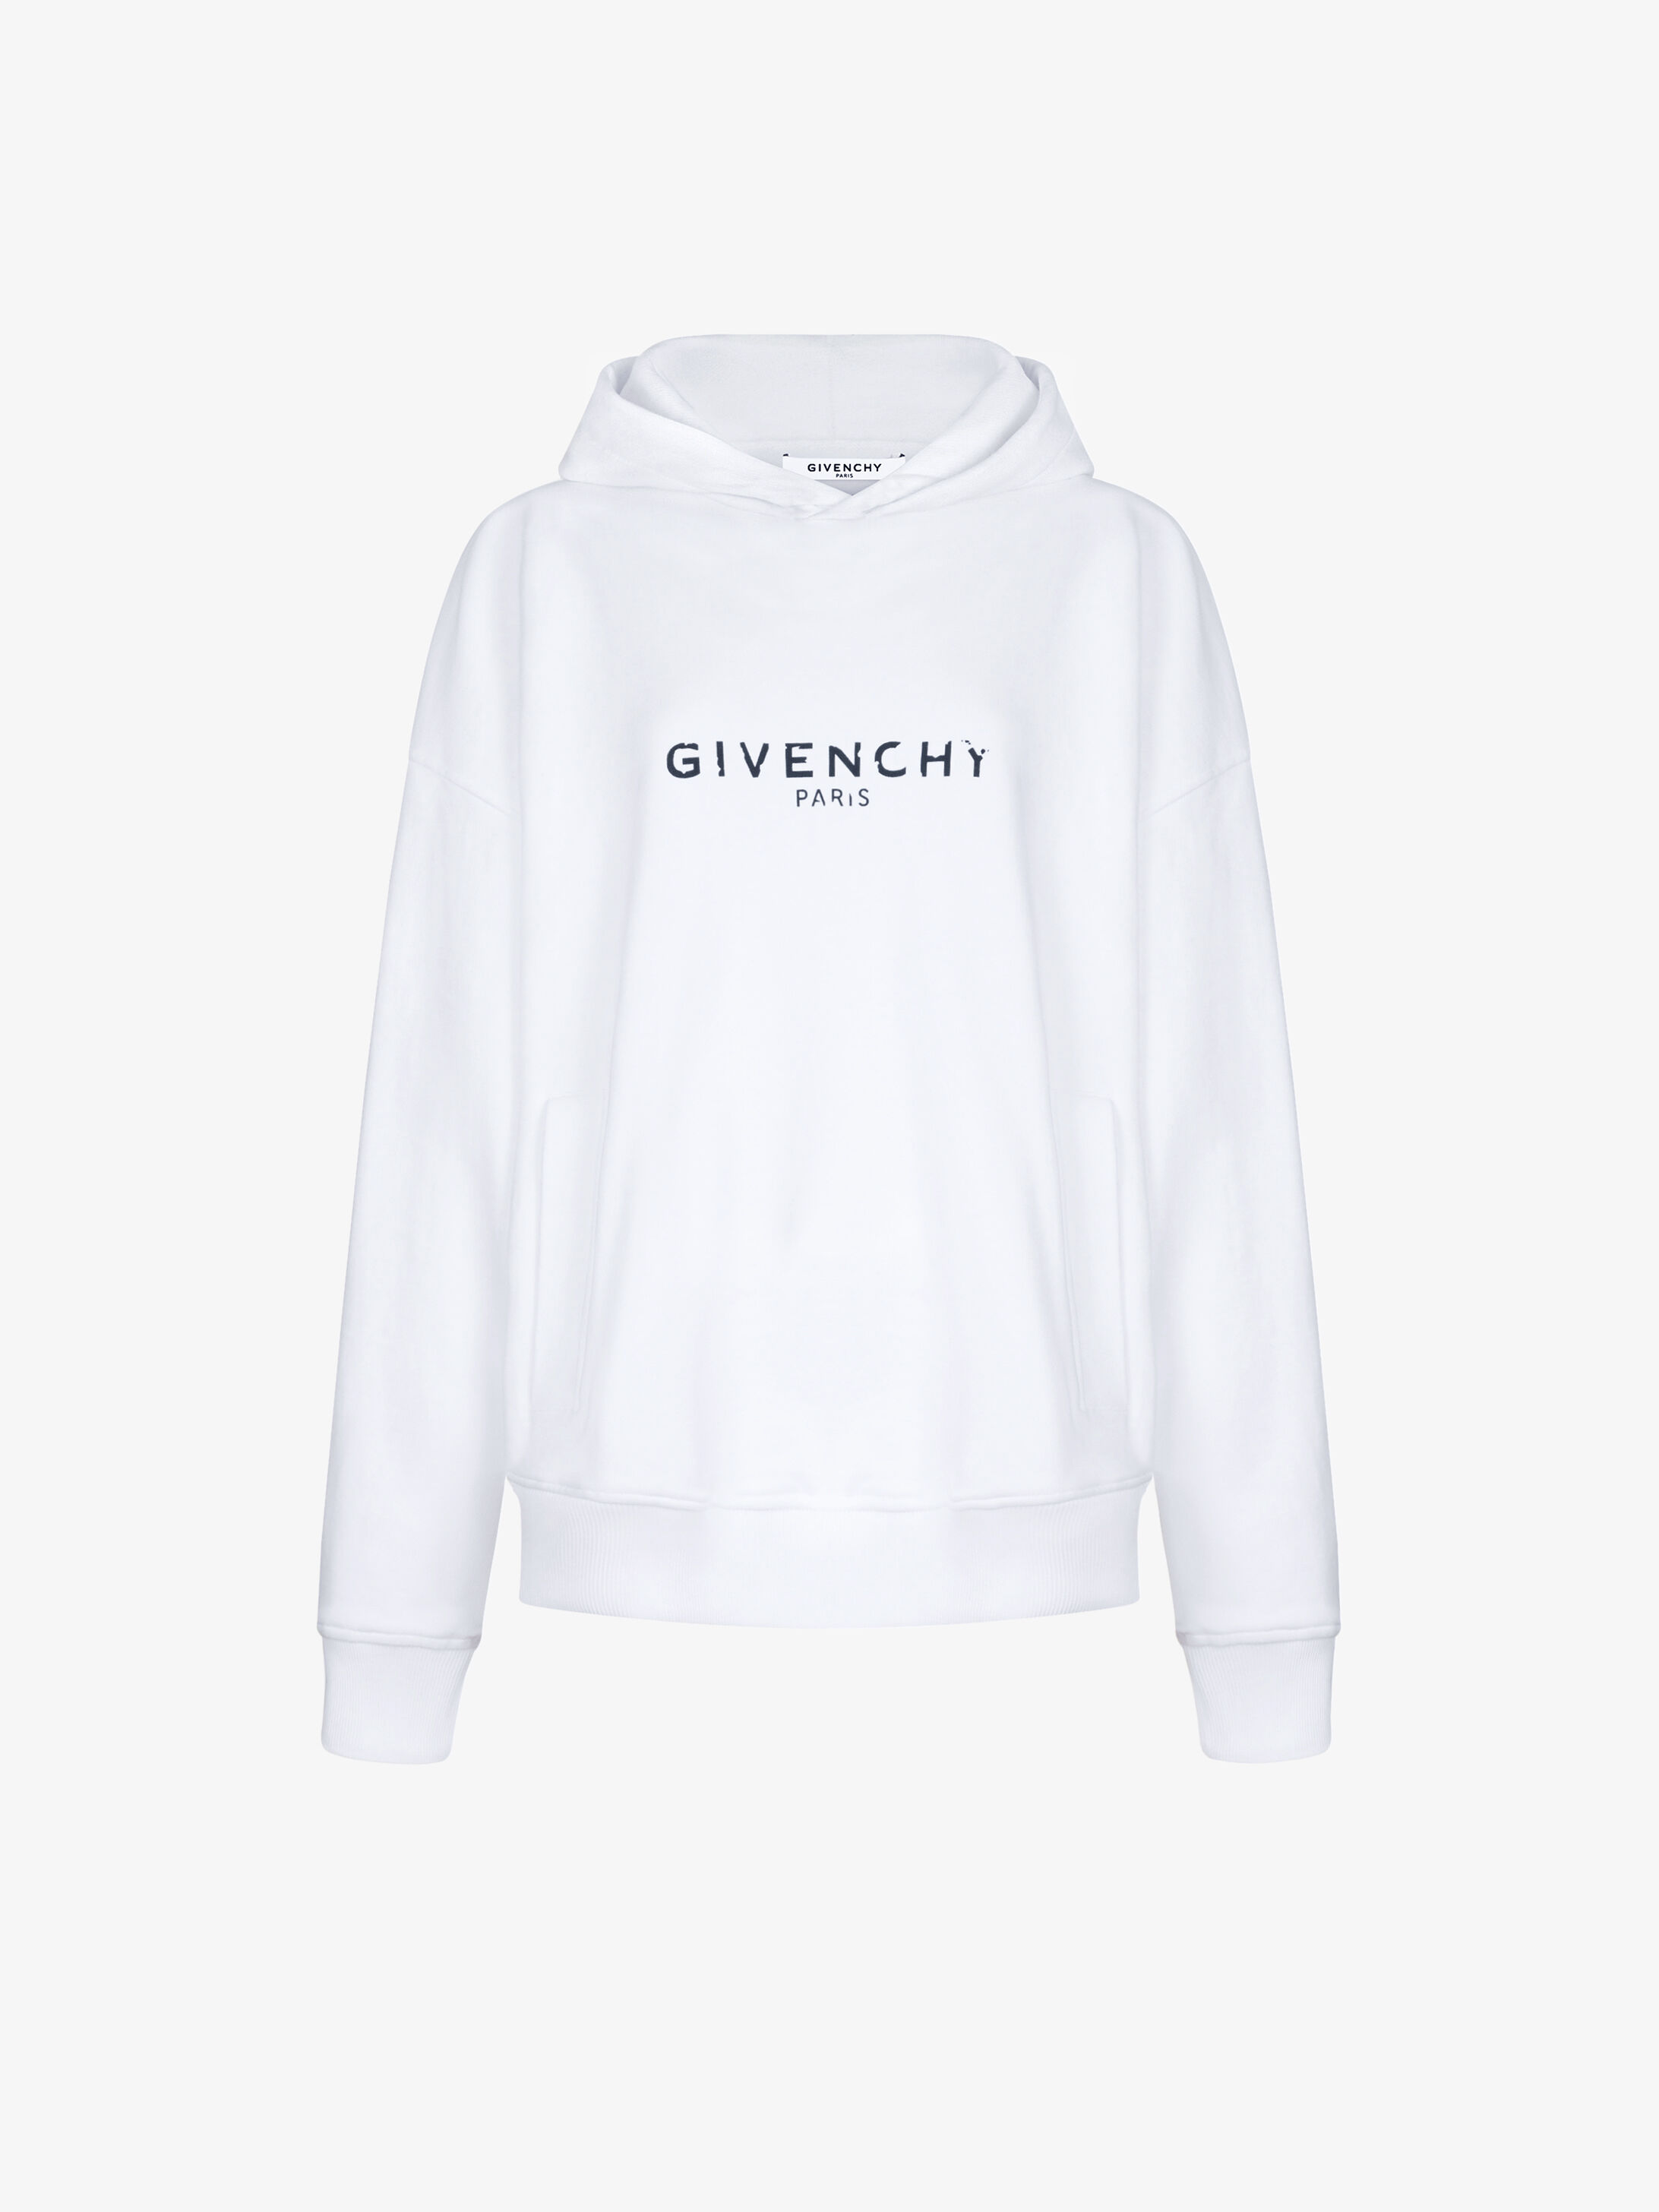 0aed11b2734 Women s Sweatshirts collection by Givenchy.